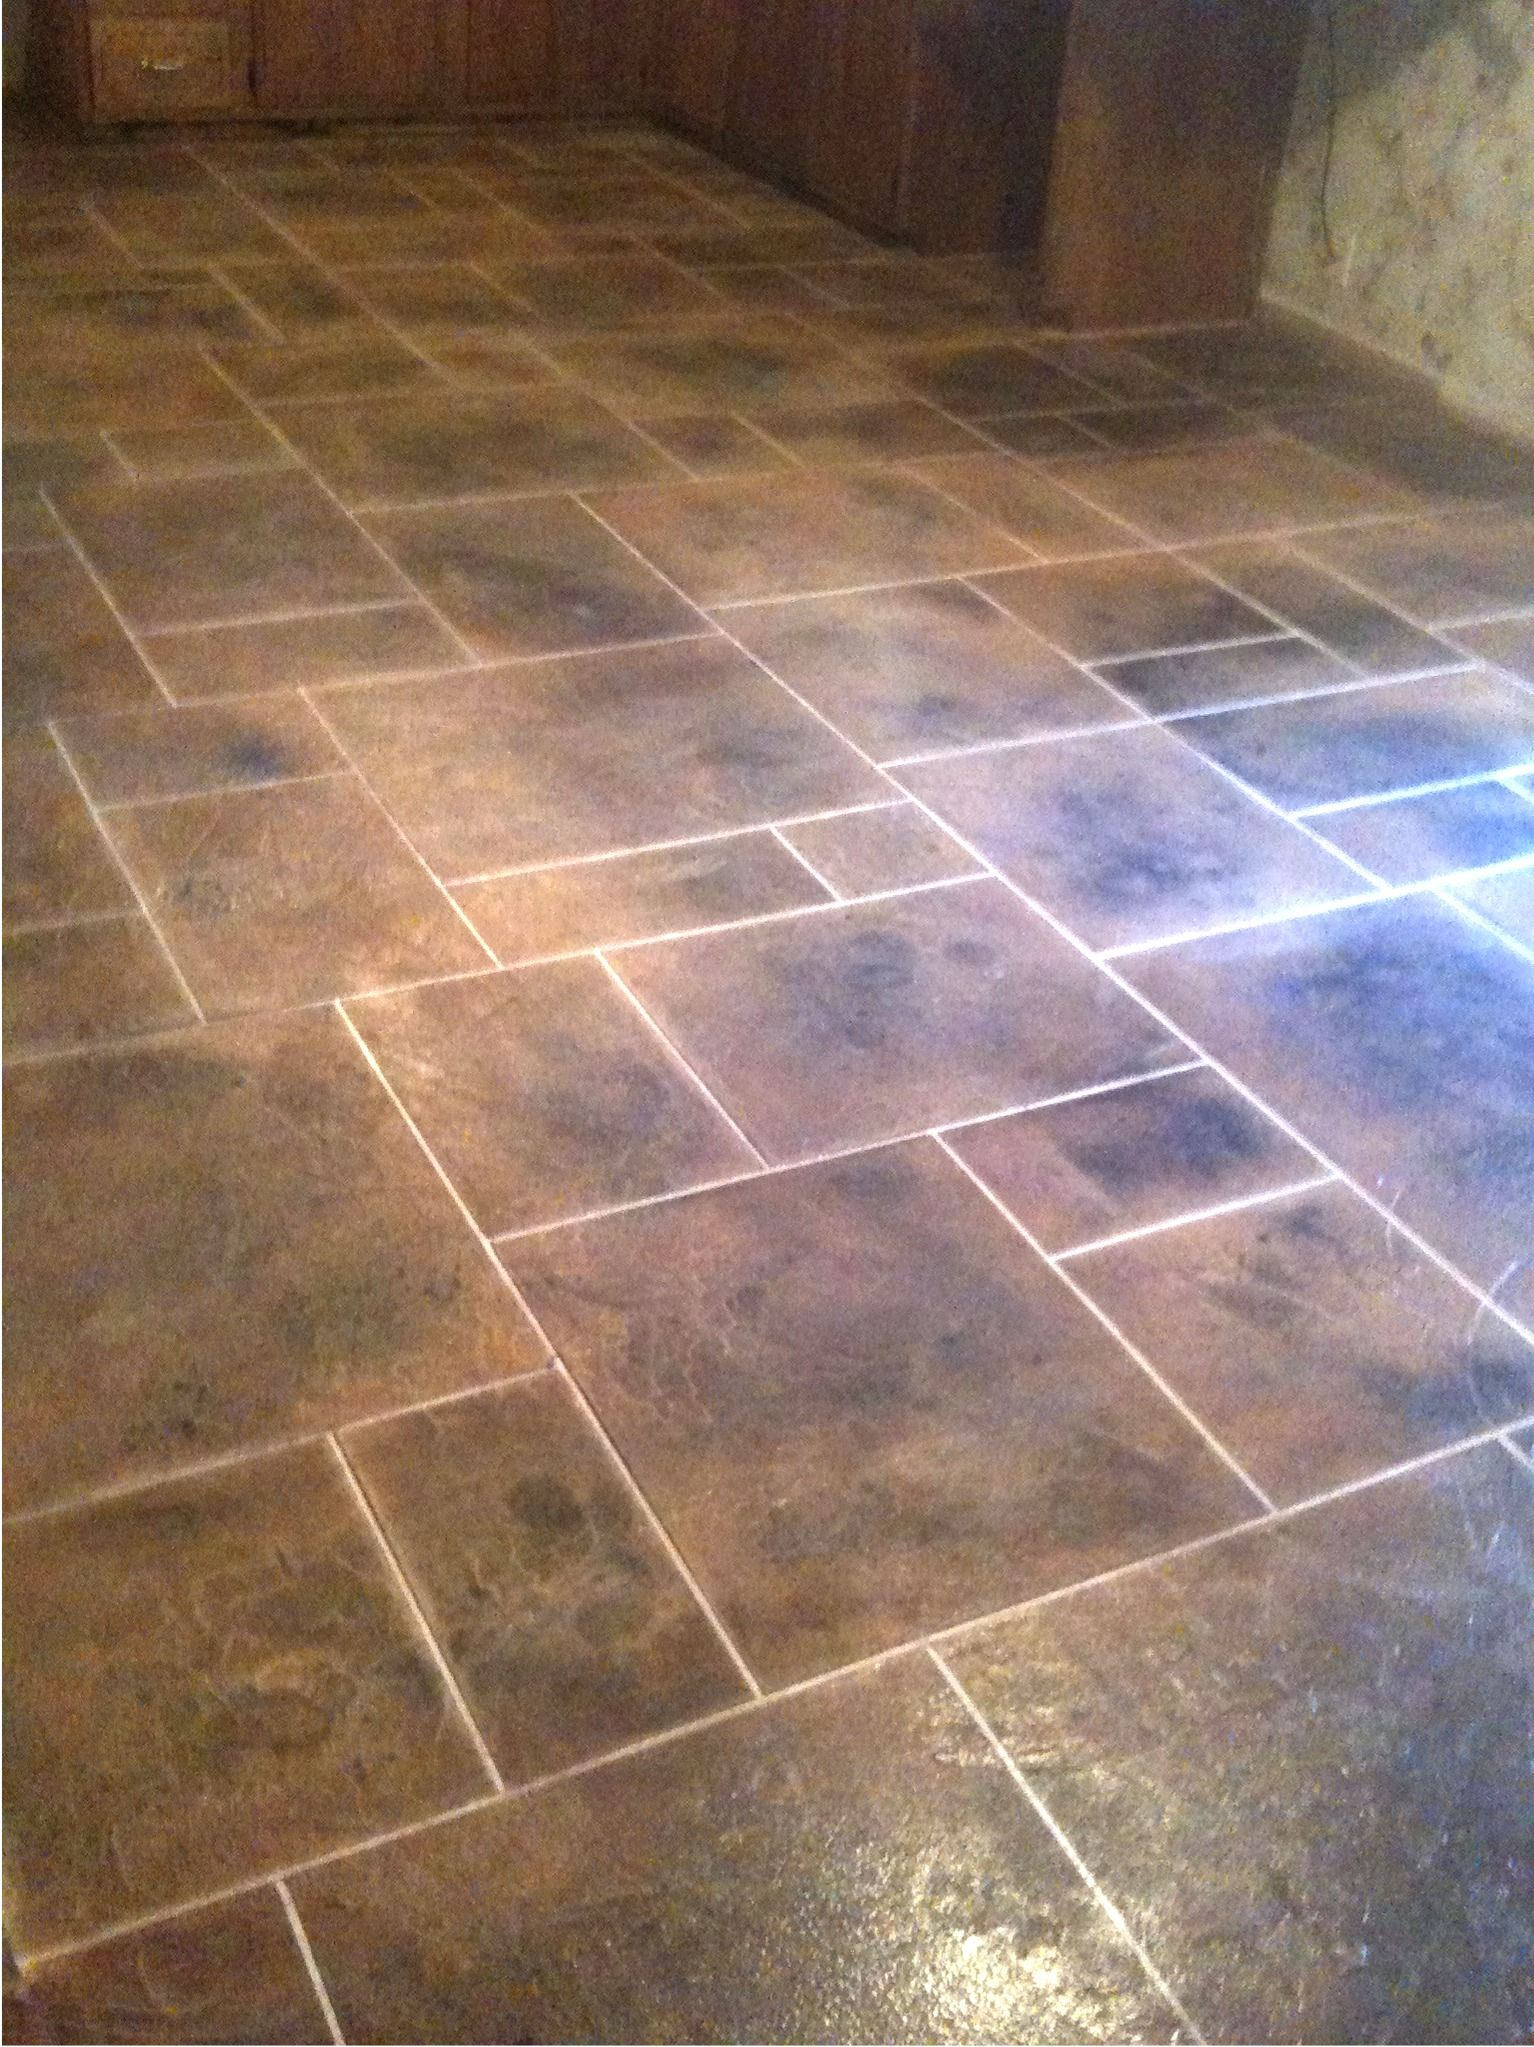 Kitchen floor tile patterns concrete overlay random for Kitchen tiles design photos